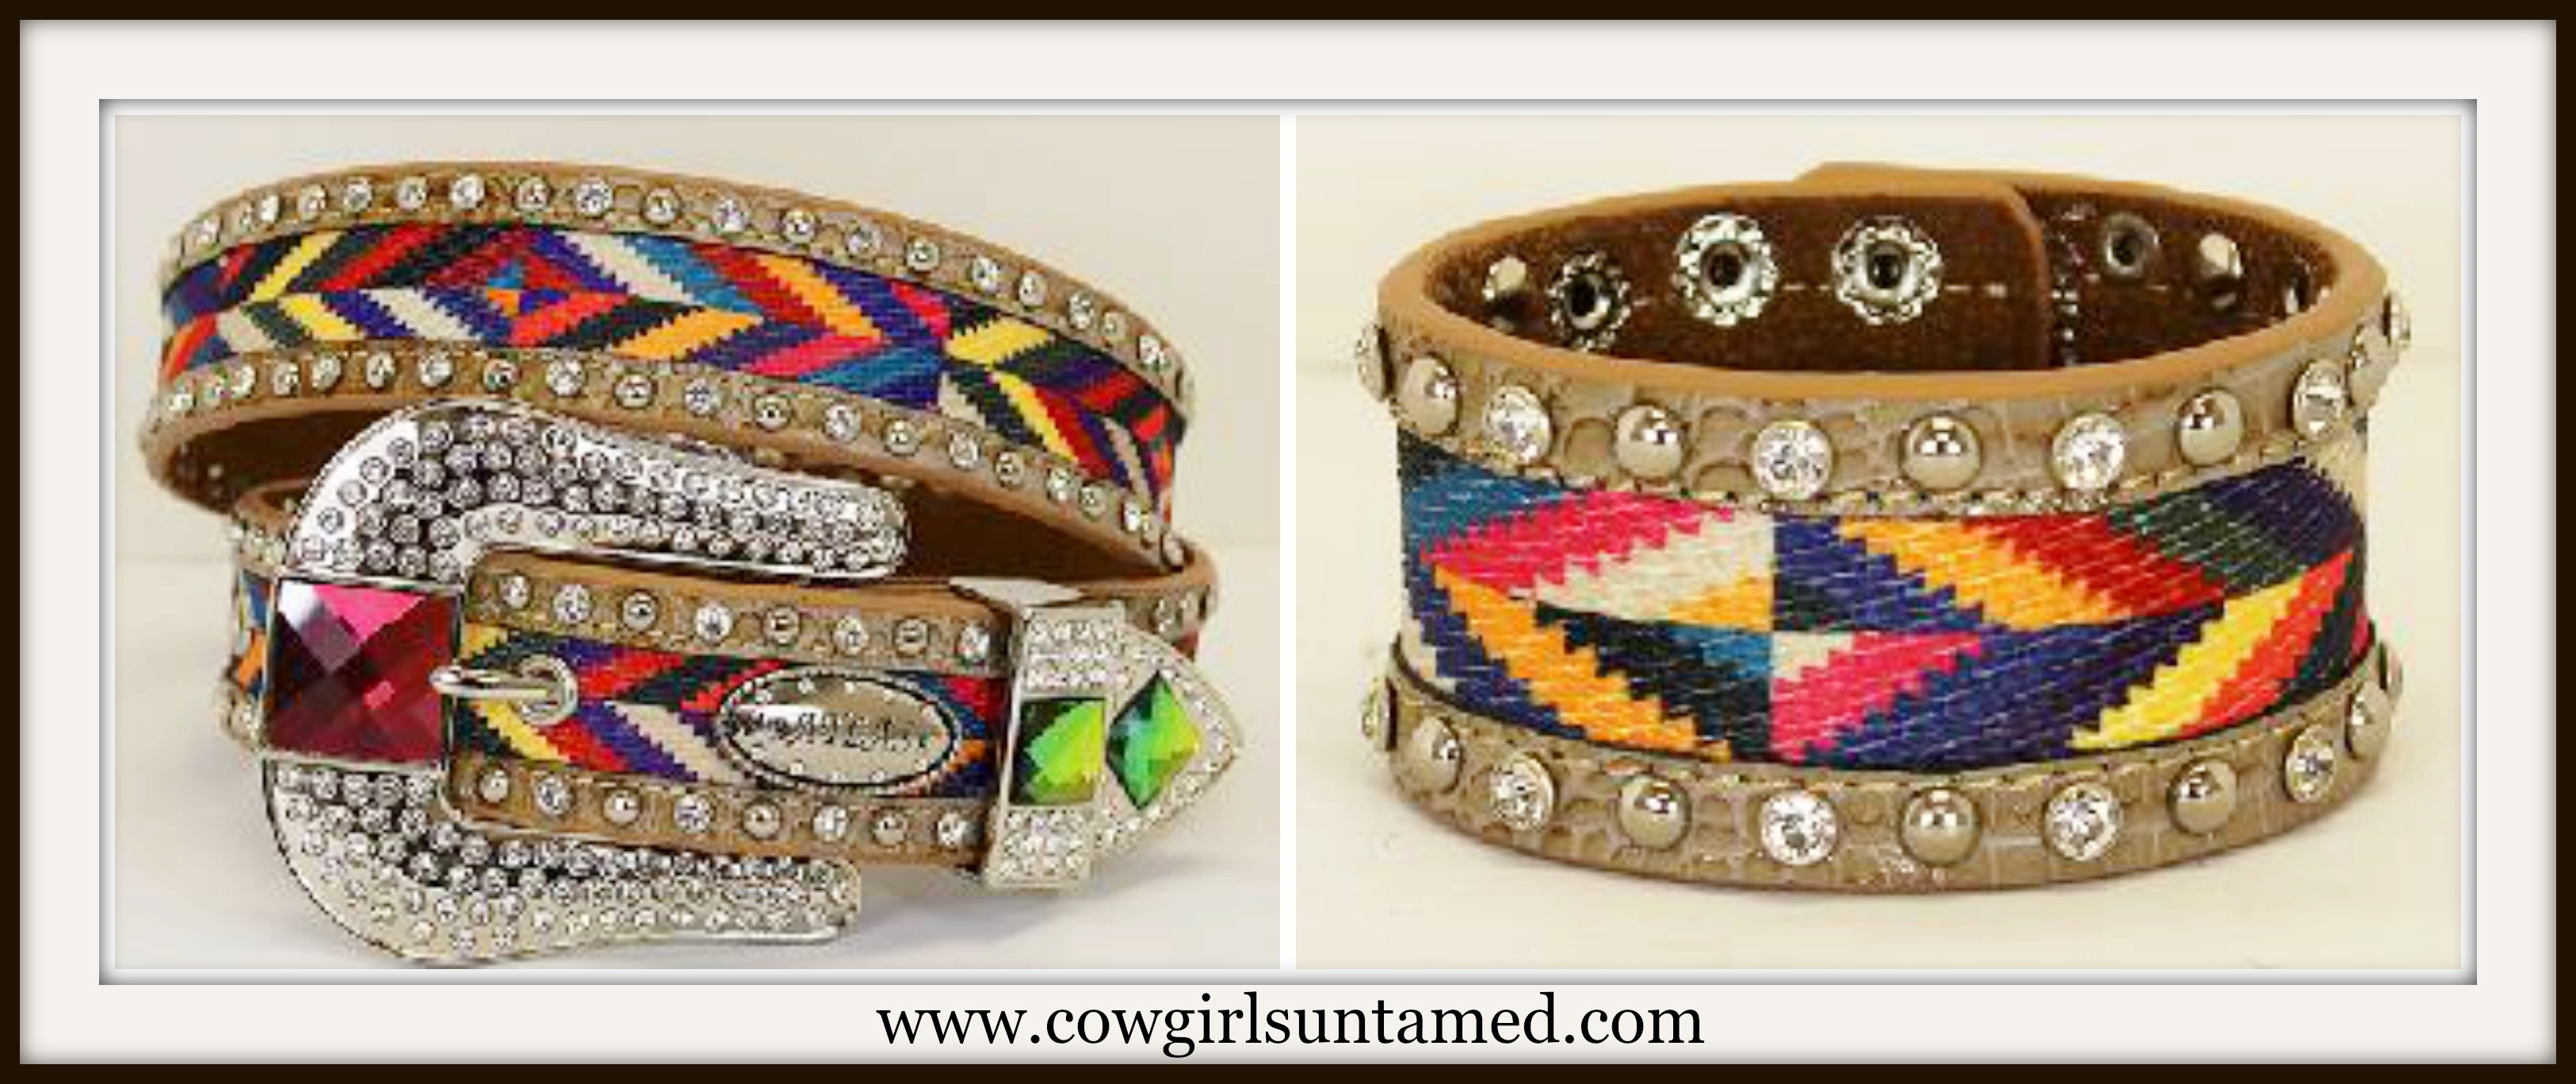 COWGIRL GYPSY BELT Multi Color Chevron Fabric and Tan Leather Belt with Cuff Option